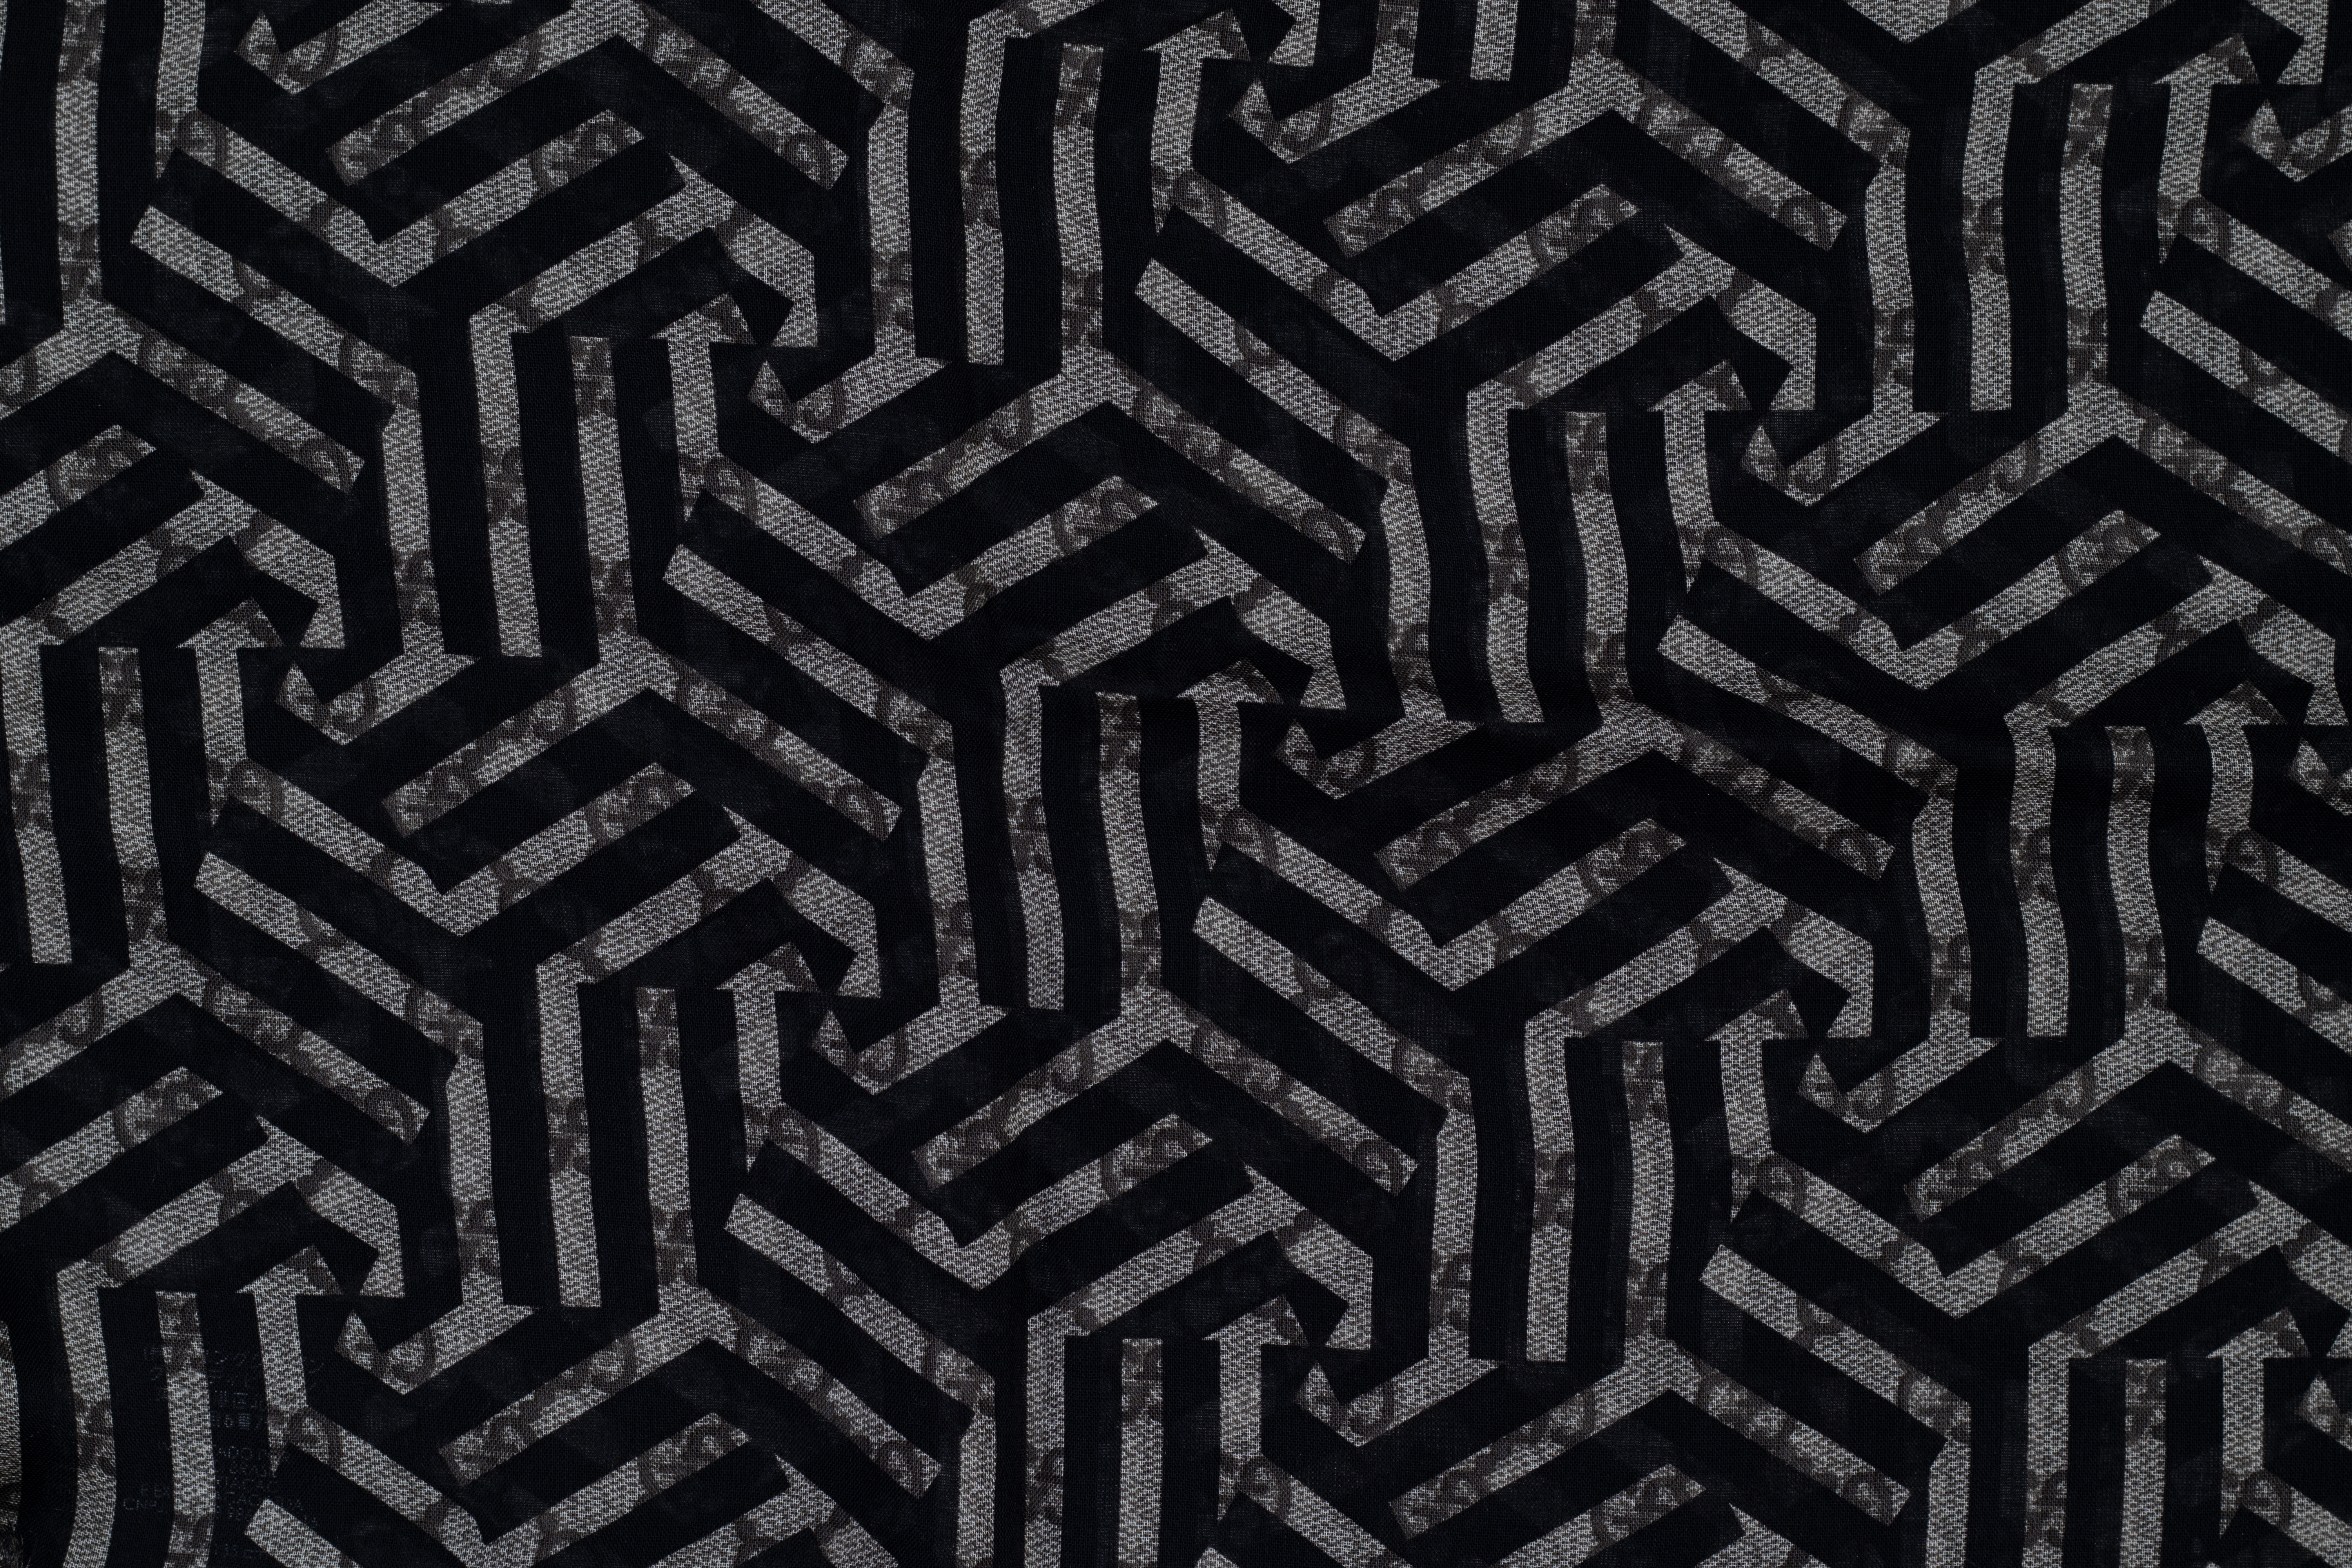 A GUCCI MONOGRAM SCARF - Image 5 of 6